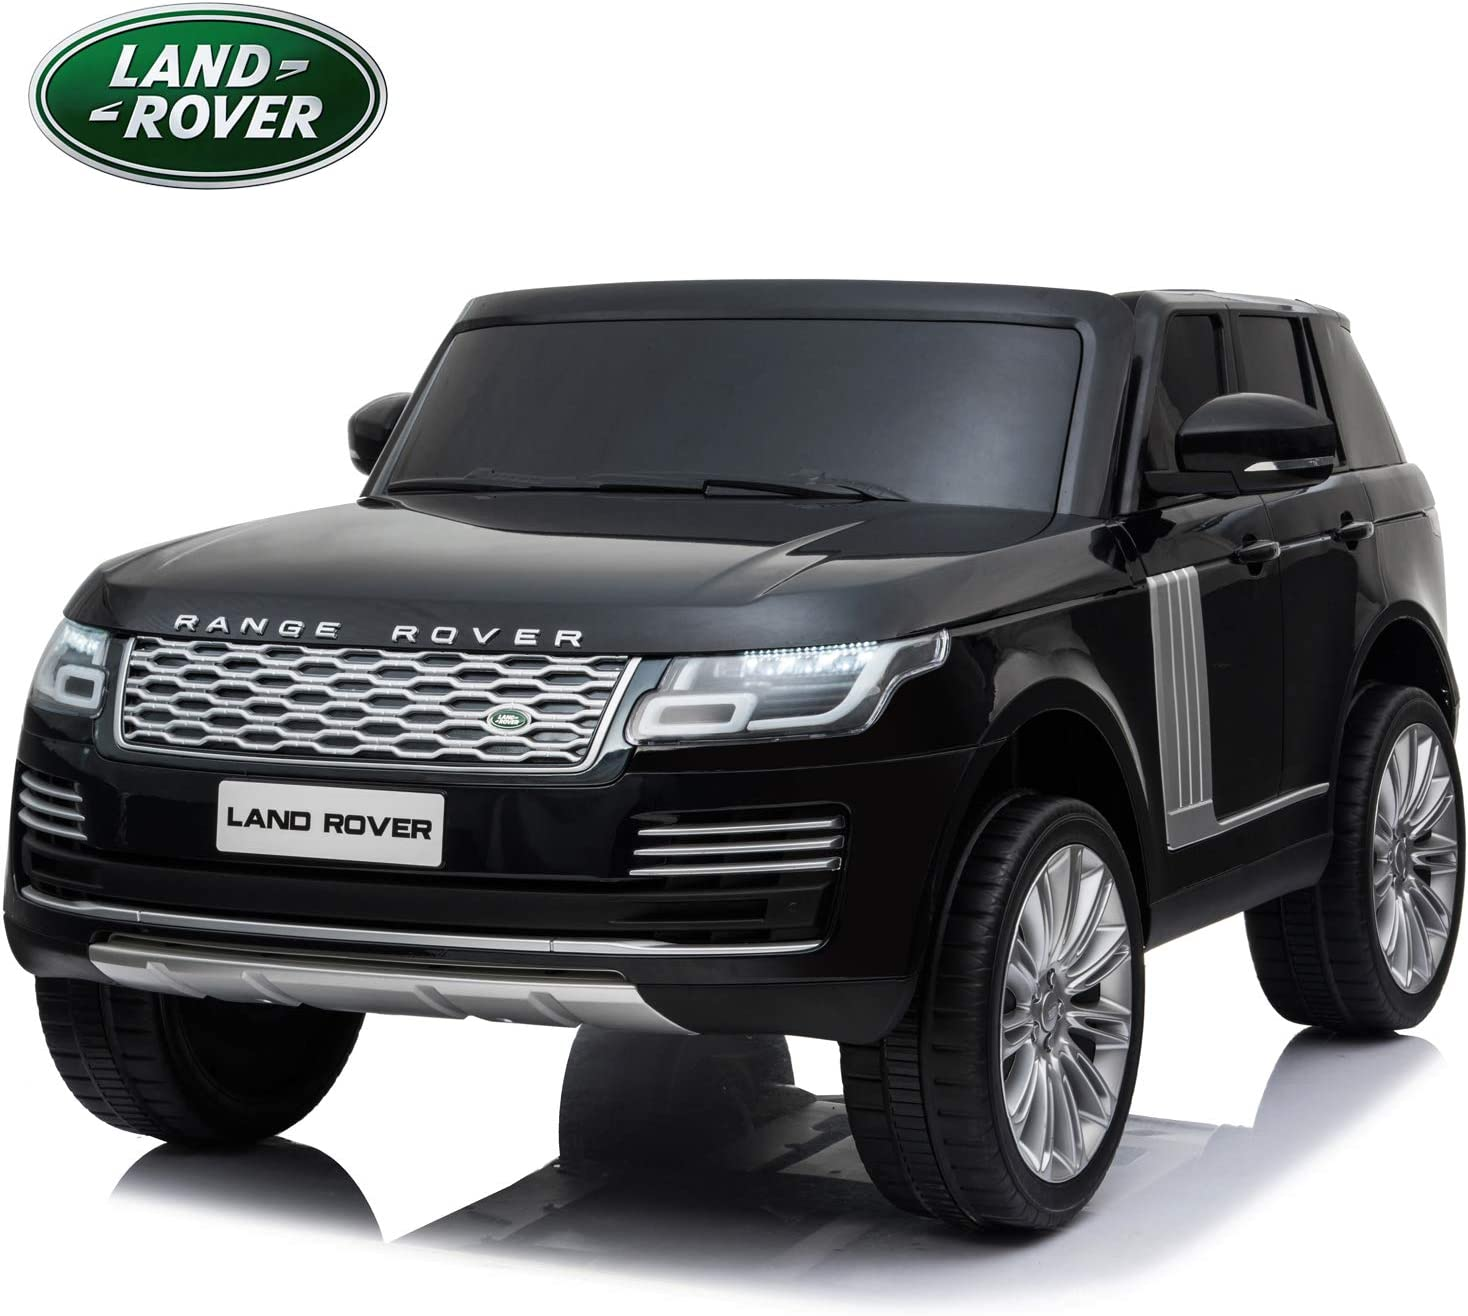 Licensed Land Rover Range Rover HSE 12V Electric Ride on Car with Remote Control for Kids, 2 Seaters, MP3, Bluetooth, Leather Seats, Openable Doors, LED Lights, Four Wheels Spring Suspension - Black